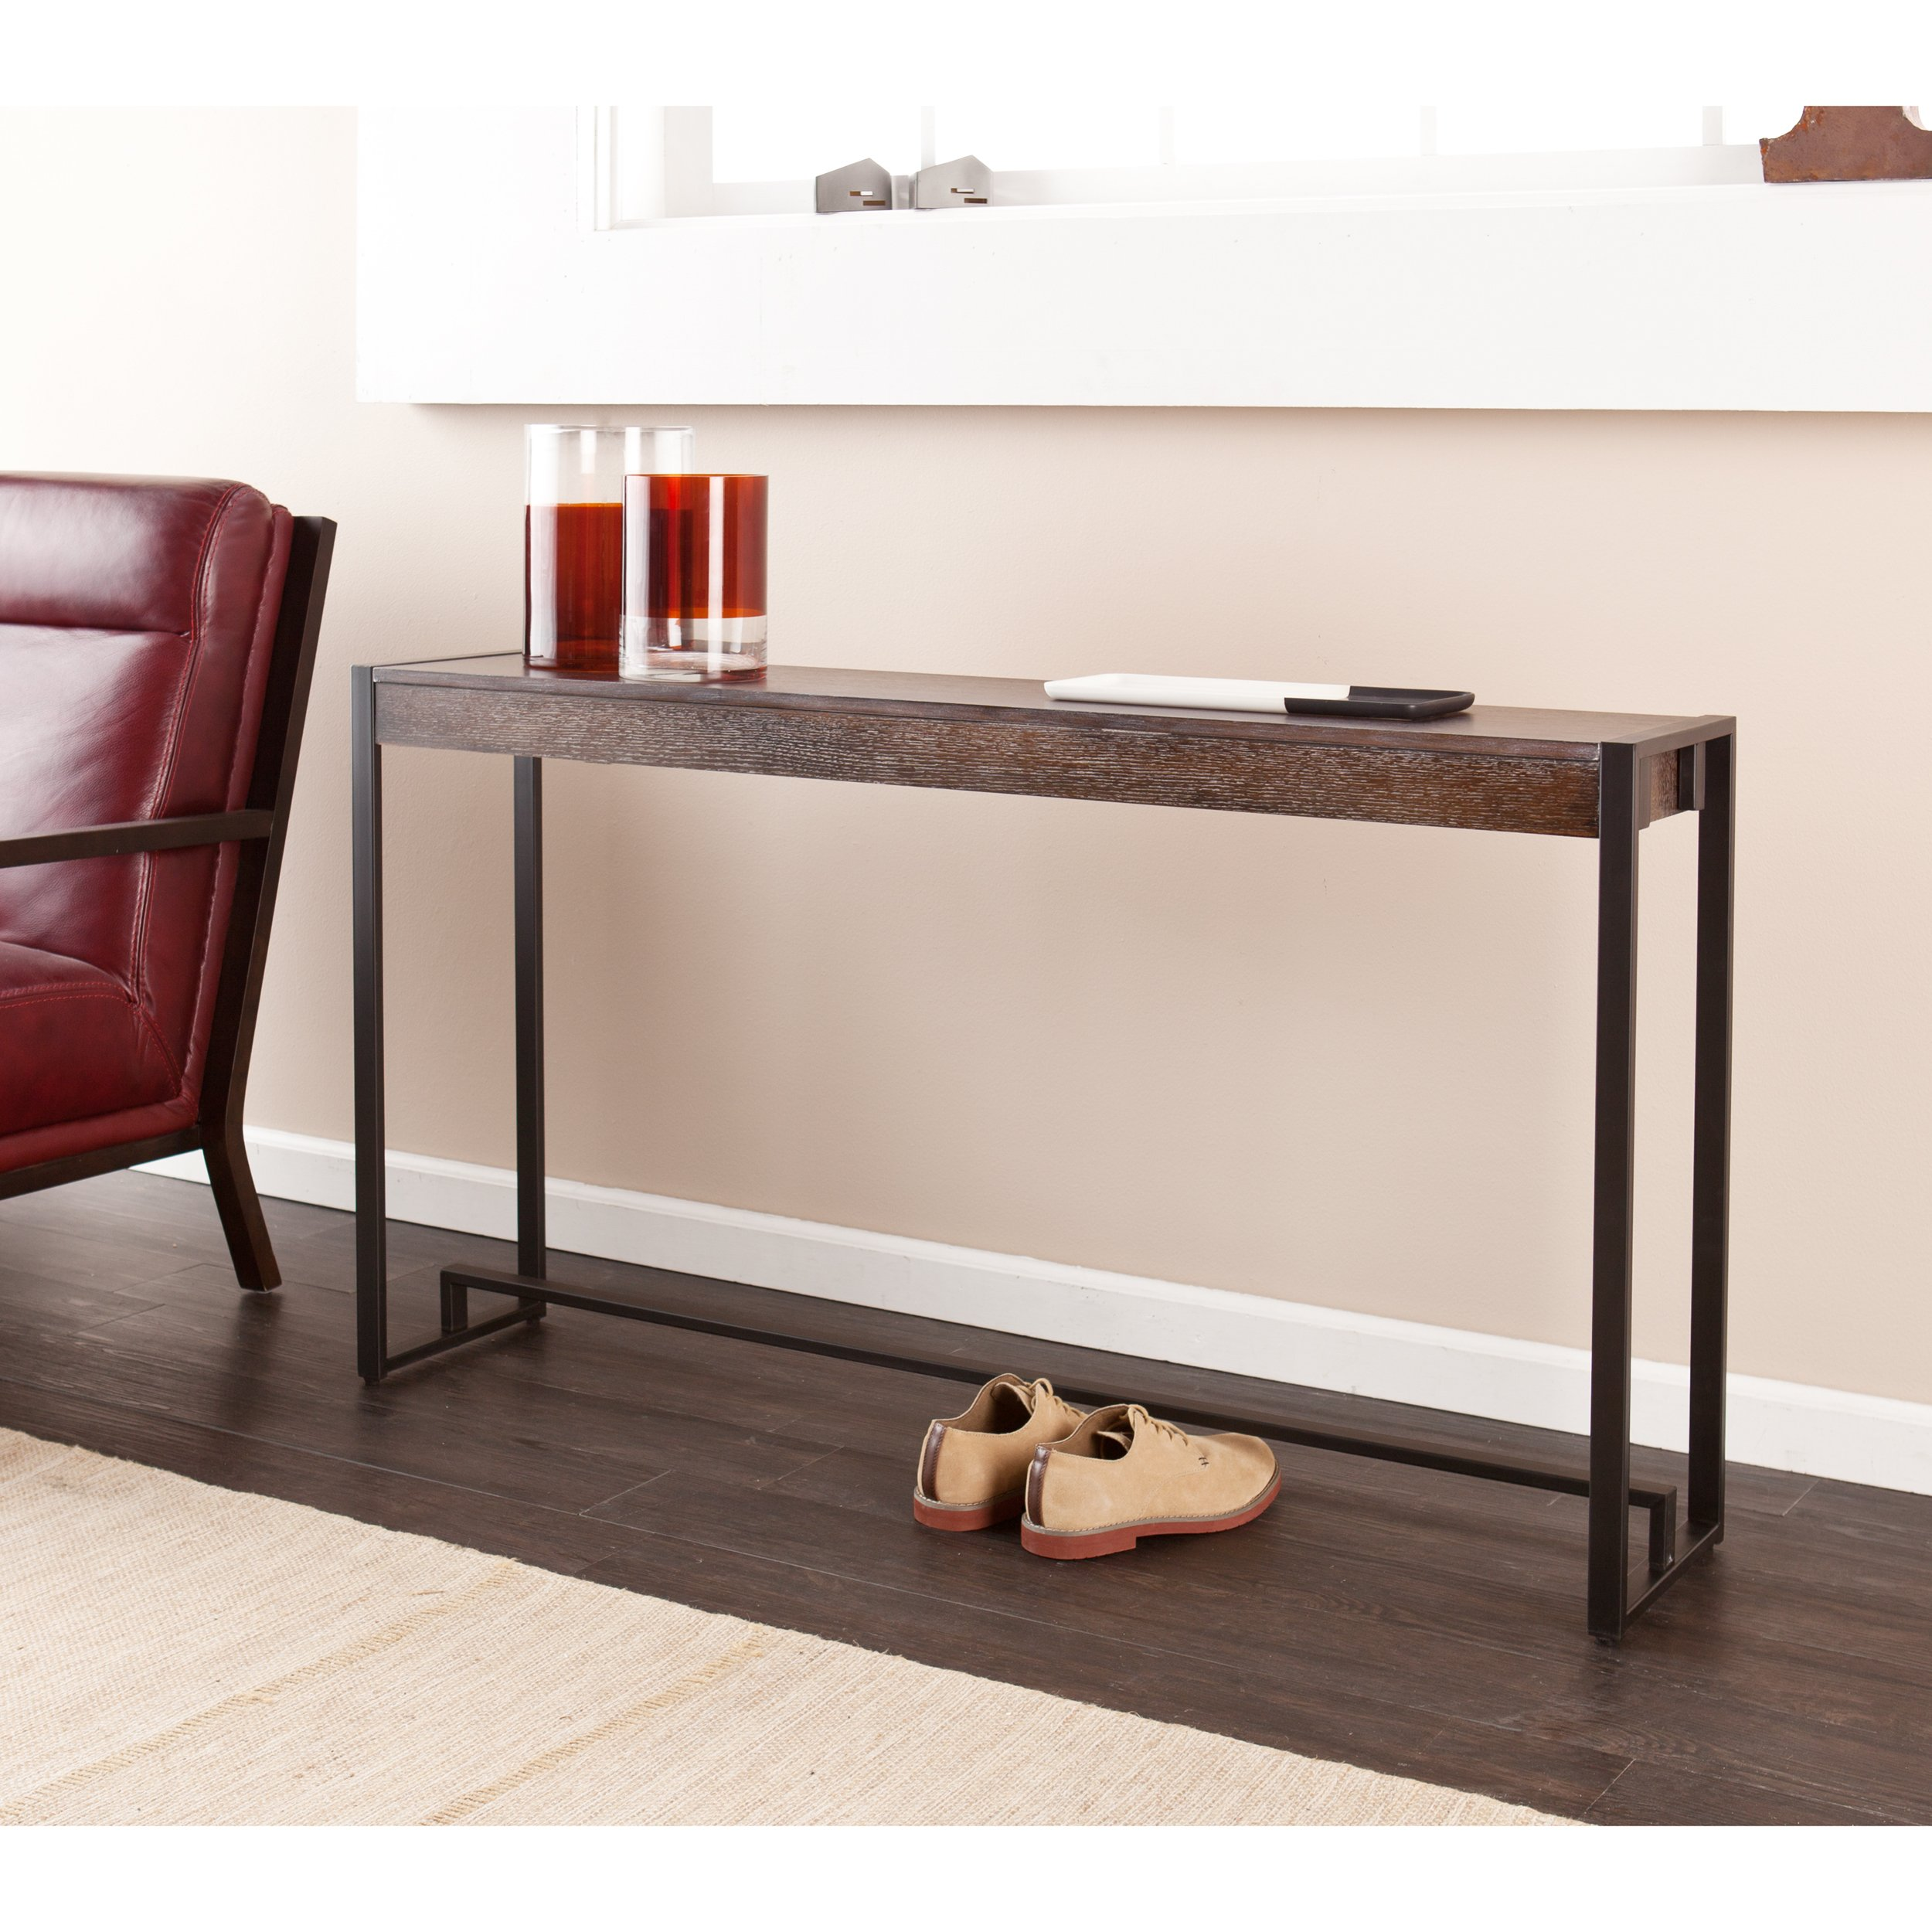 Macen Media Skinny Console Table - Slim Profile - Burnt Oak Wood Finish w/ Metal Frame by Southern Enterprises